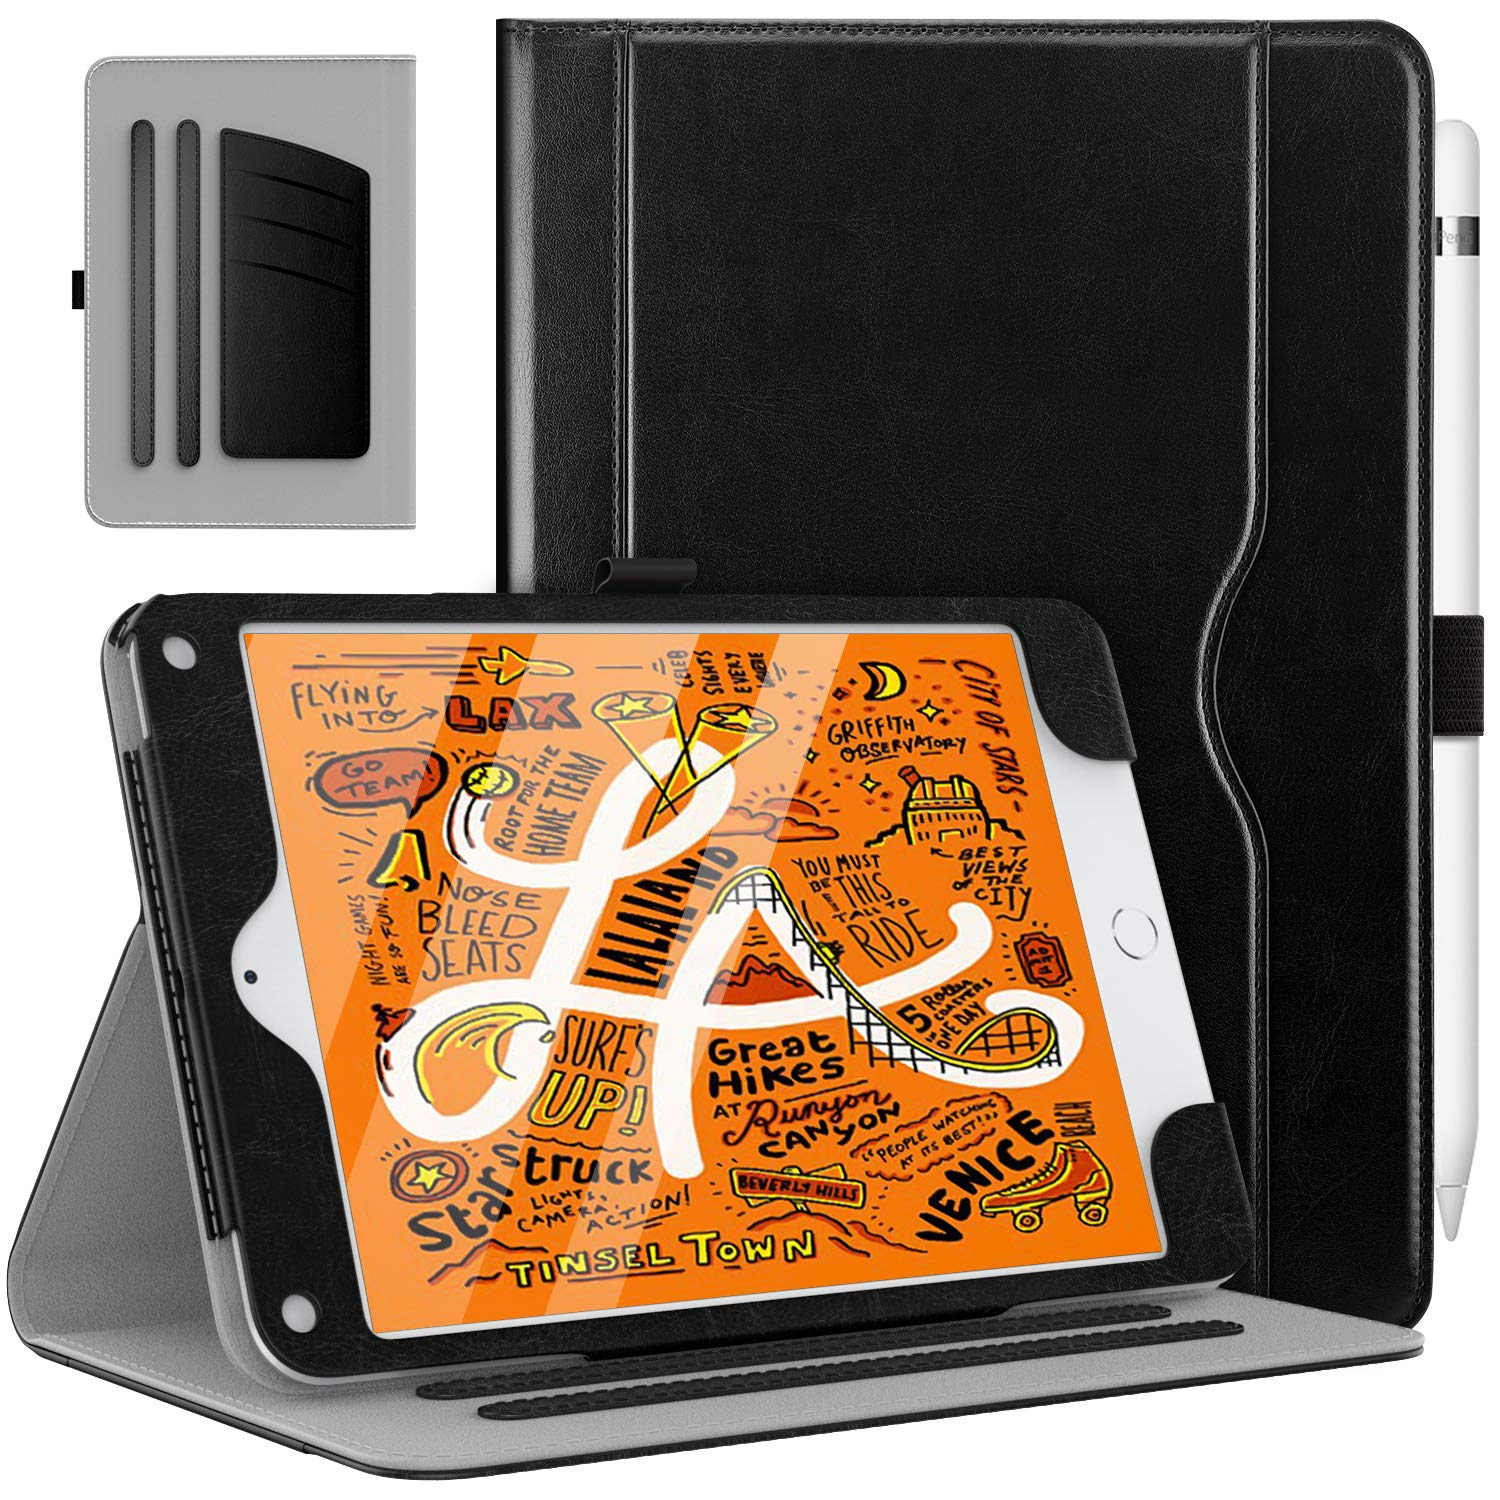 MoKo Case Fit New iPad Mini 5 2019 (5th Generation 7.9 inch) - Slim Folding Stand Folio Cover Case with Auto Wake/Sleep and Document Card Slots, Multiple Viewing Angles - Black